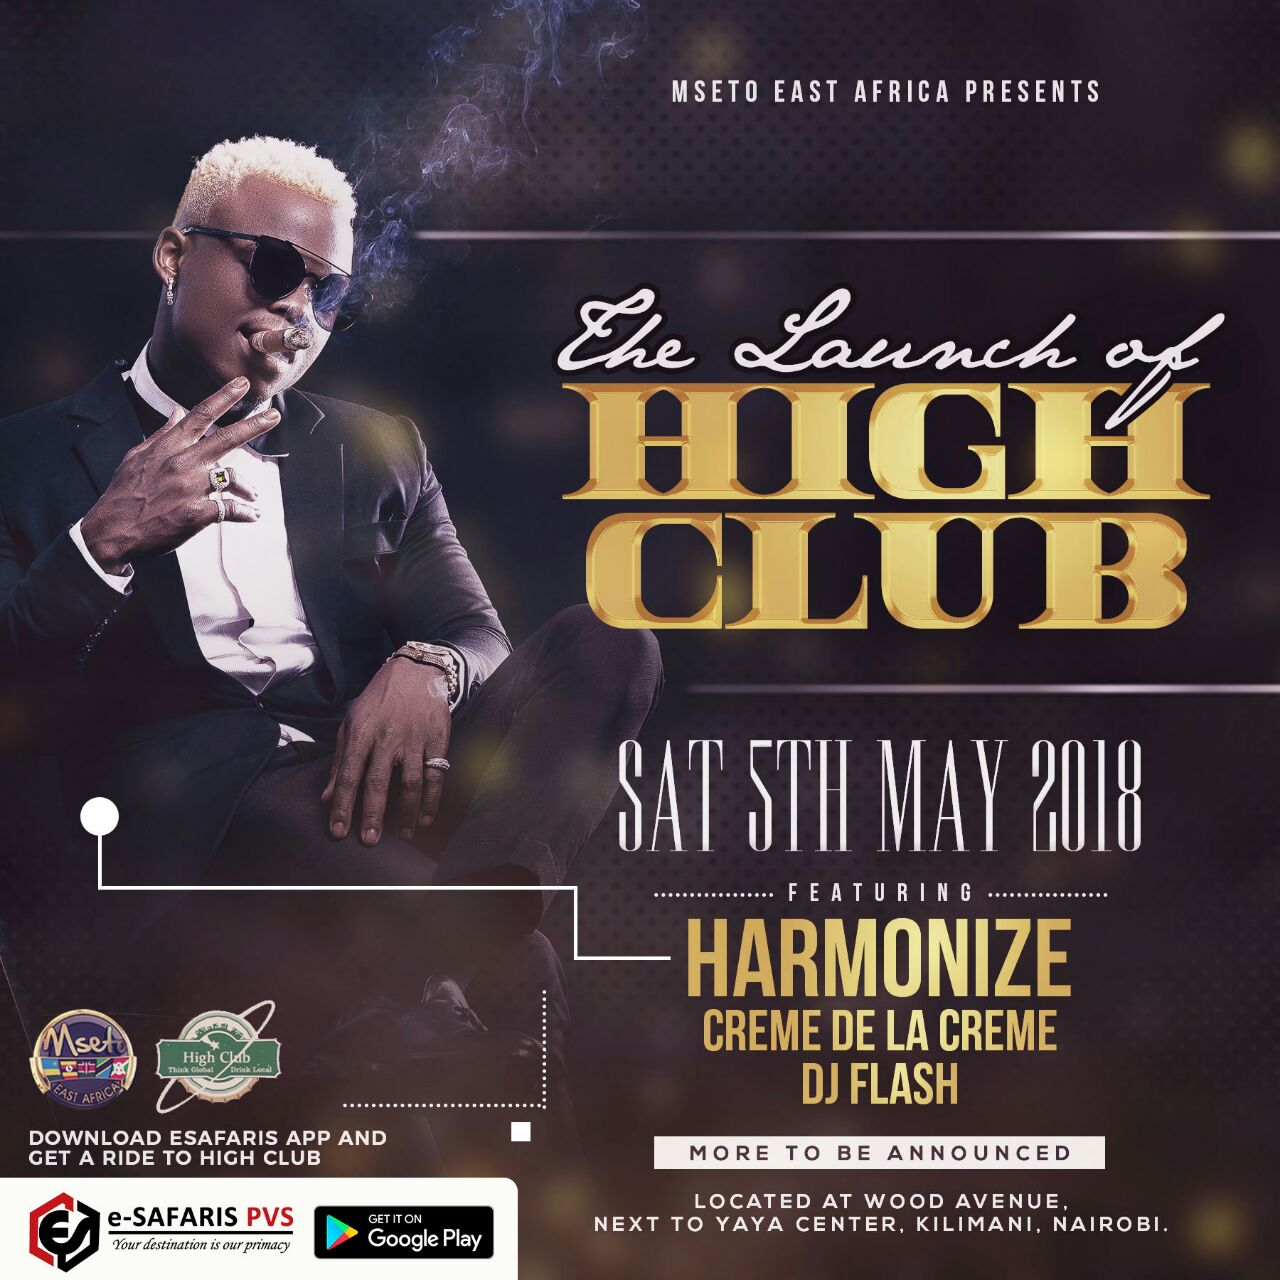 HARMONIZE SET TO HEADLINE THE LAUNCH OF A NEW CLUB IN NAIROBI - HIGH CLUB